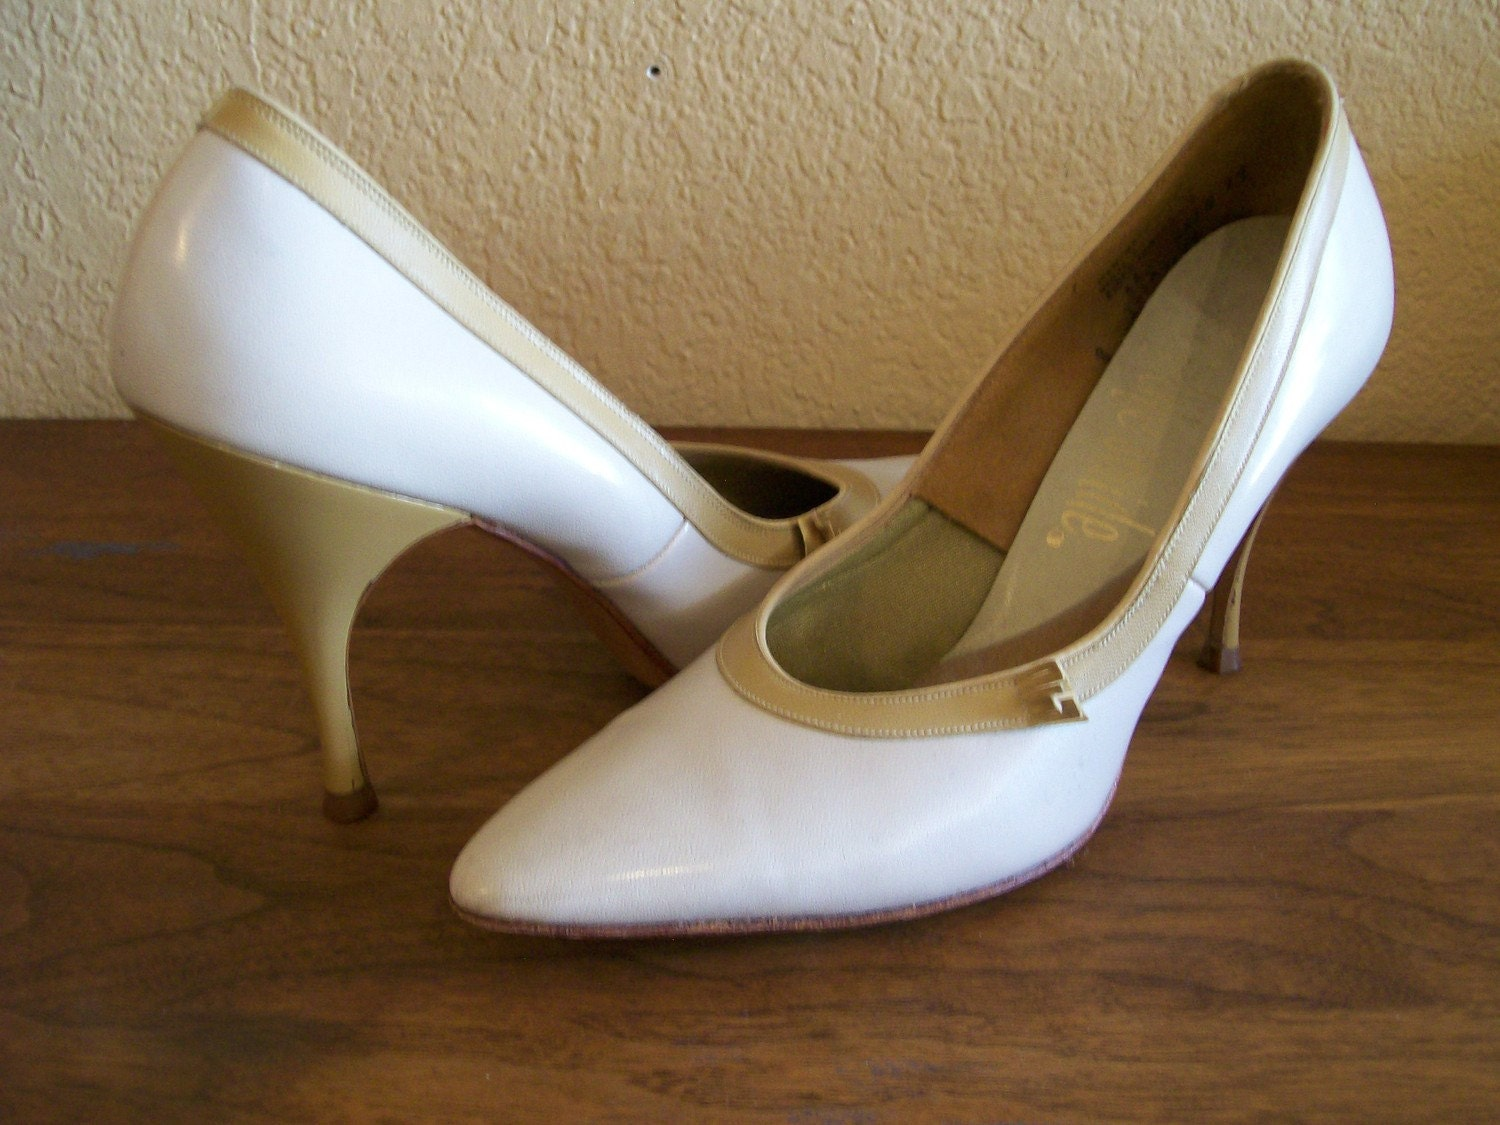 1950s spike heel two tone Life Stride pumps 8